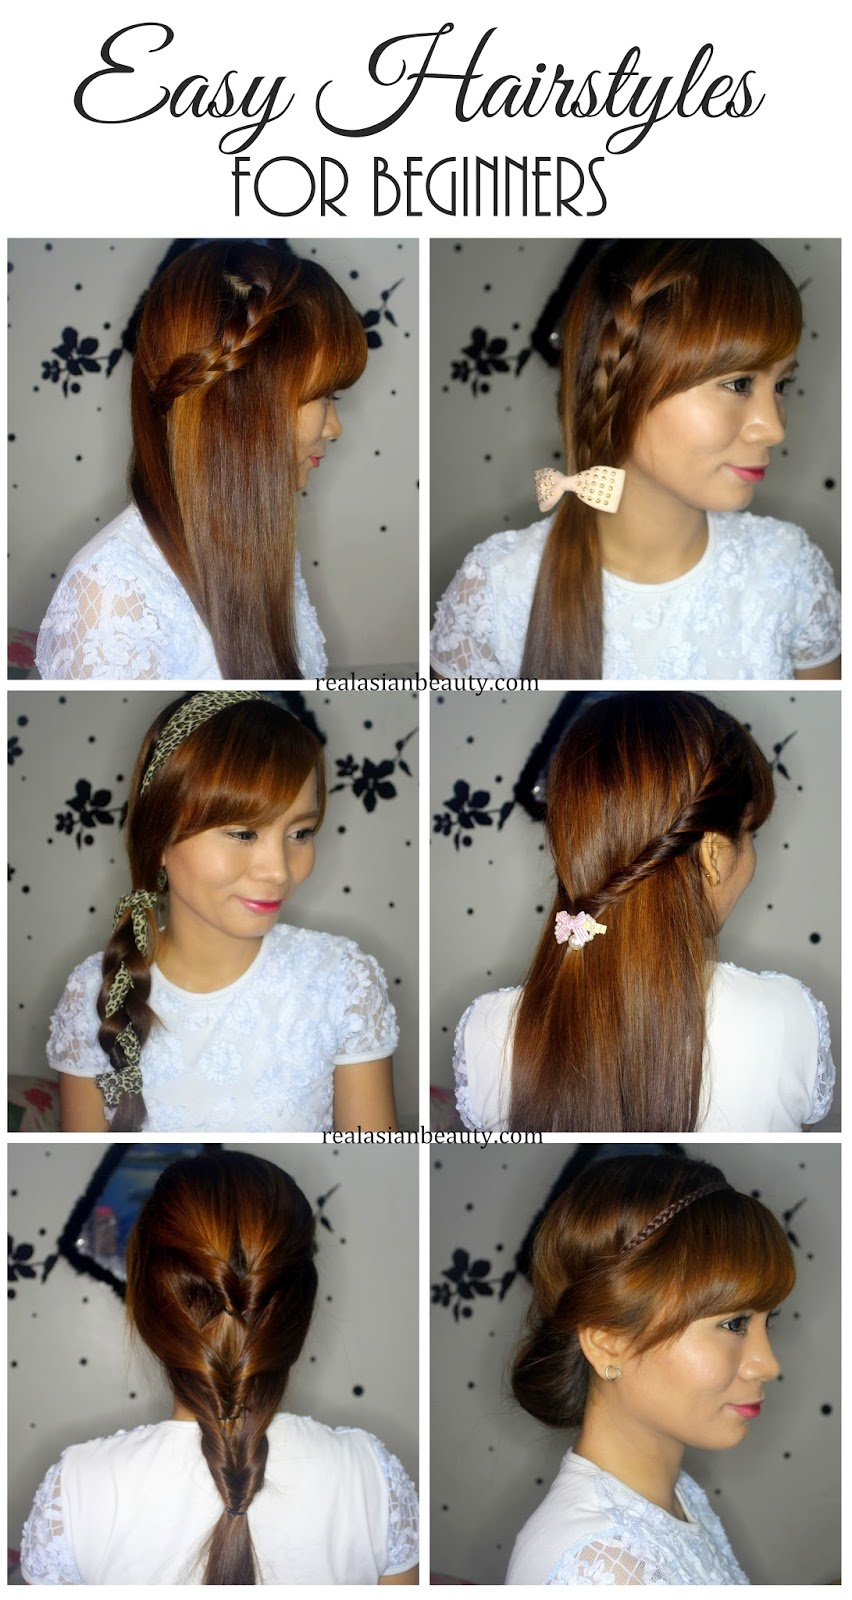 easy hairstyles for beginners - beauty and fashion